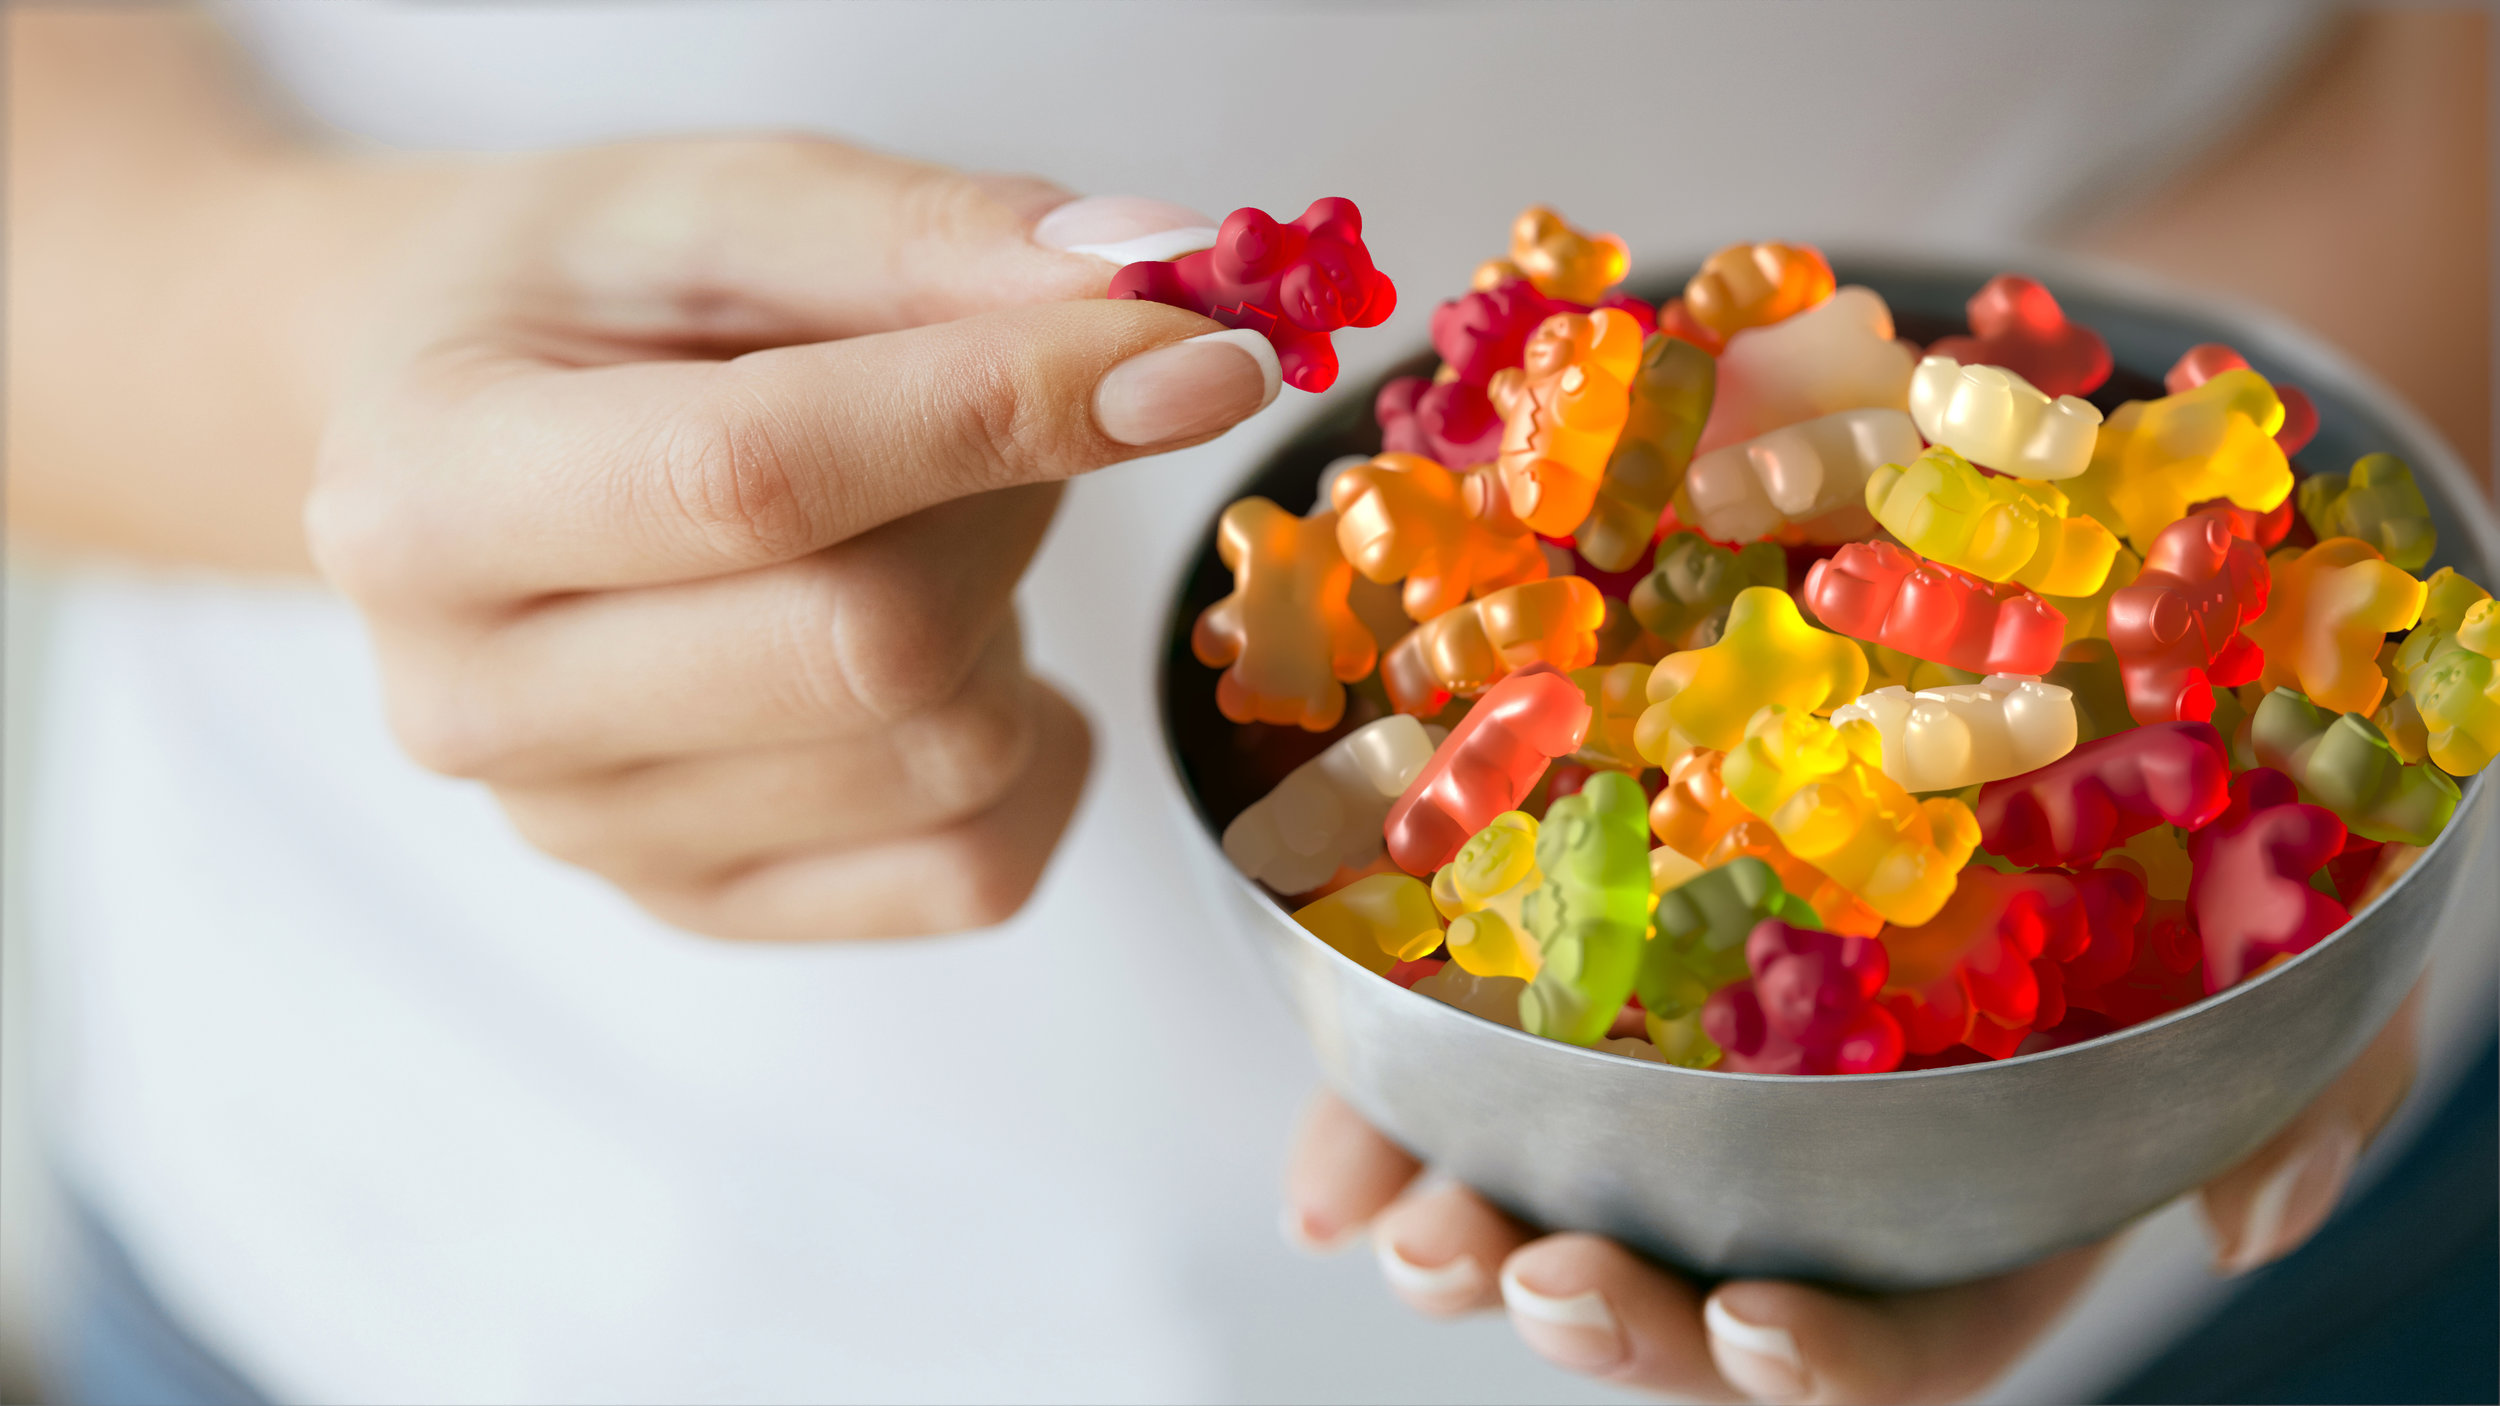 Classic Bears_Lifestyle_Bowl in Hand_104126933.jpg